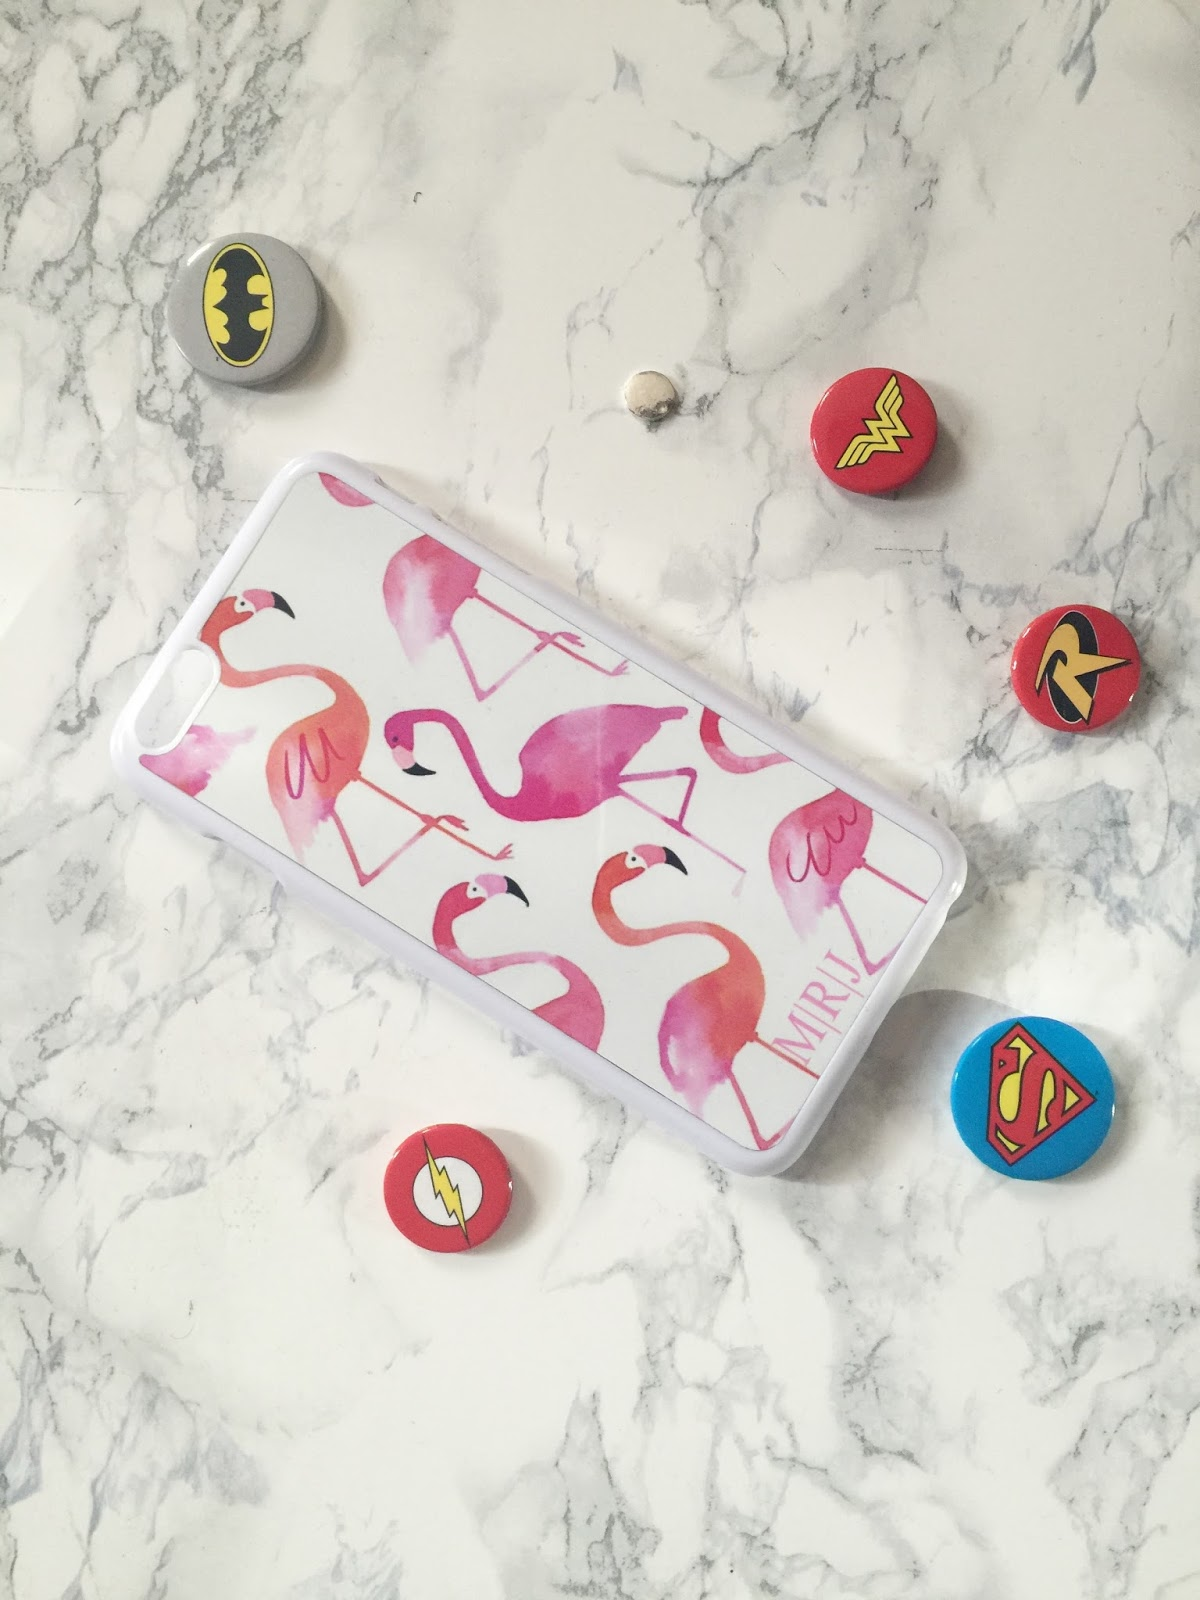 The Flamingo Case from Gocustomised